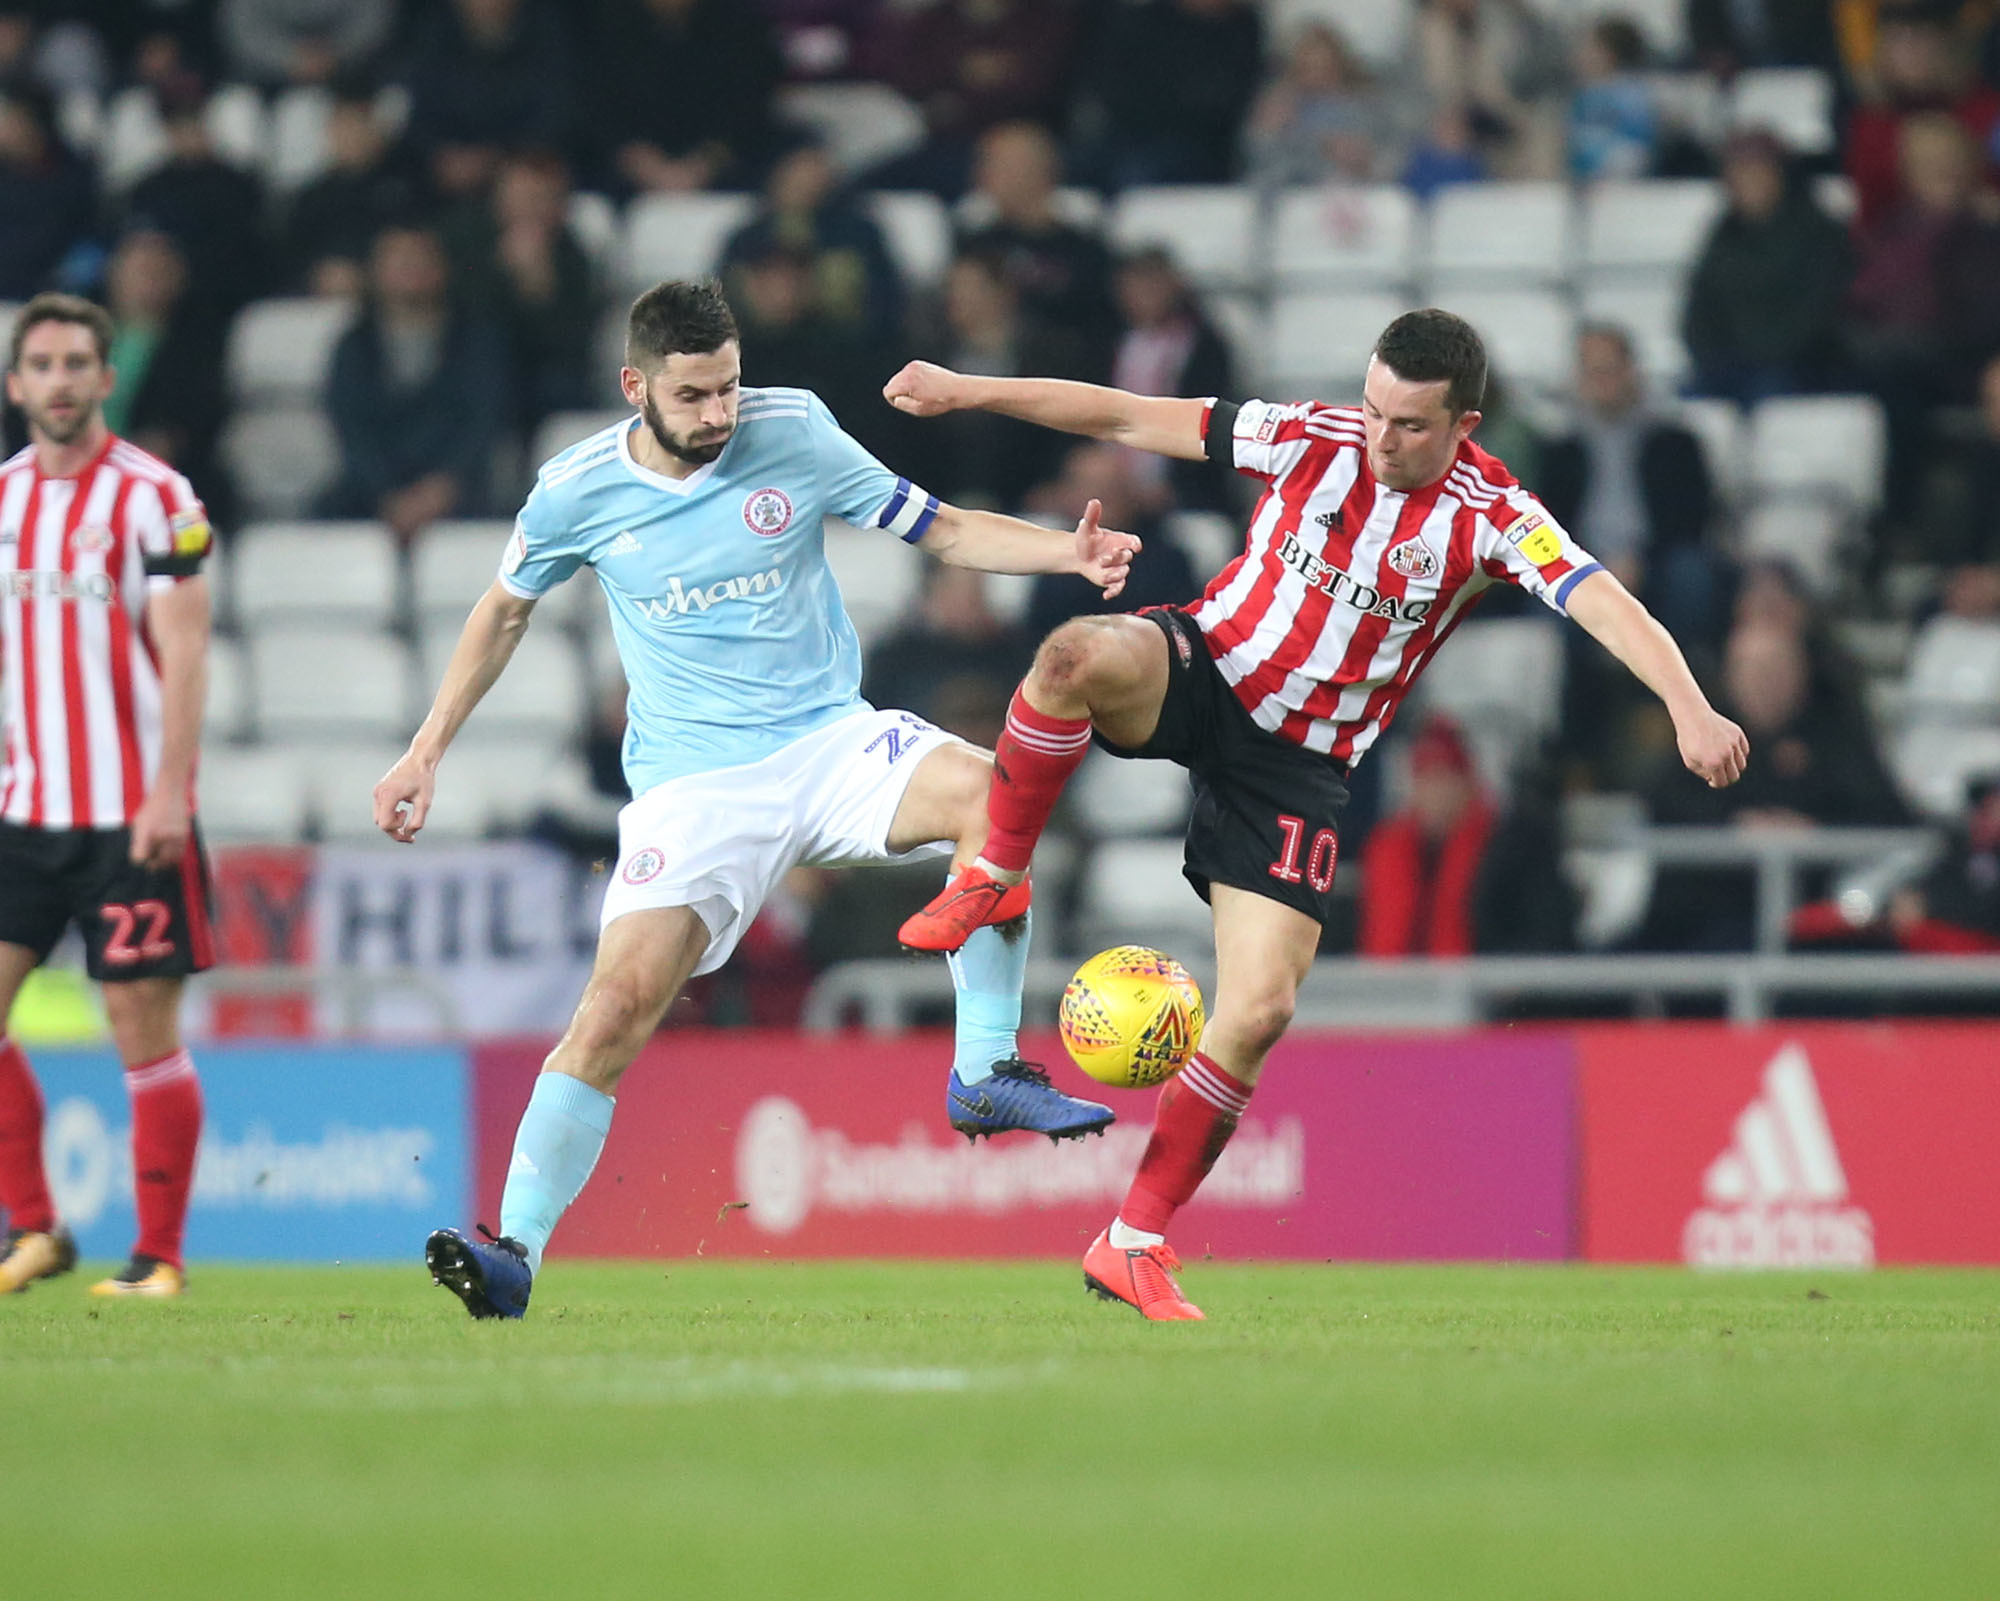 Seamus Conneely in action against Sunderland Picture: KIPAX